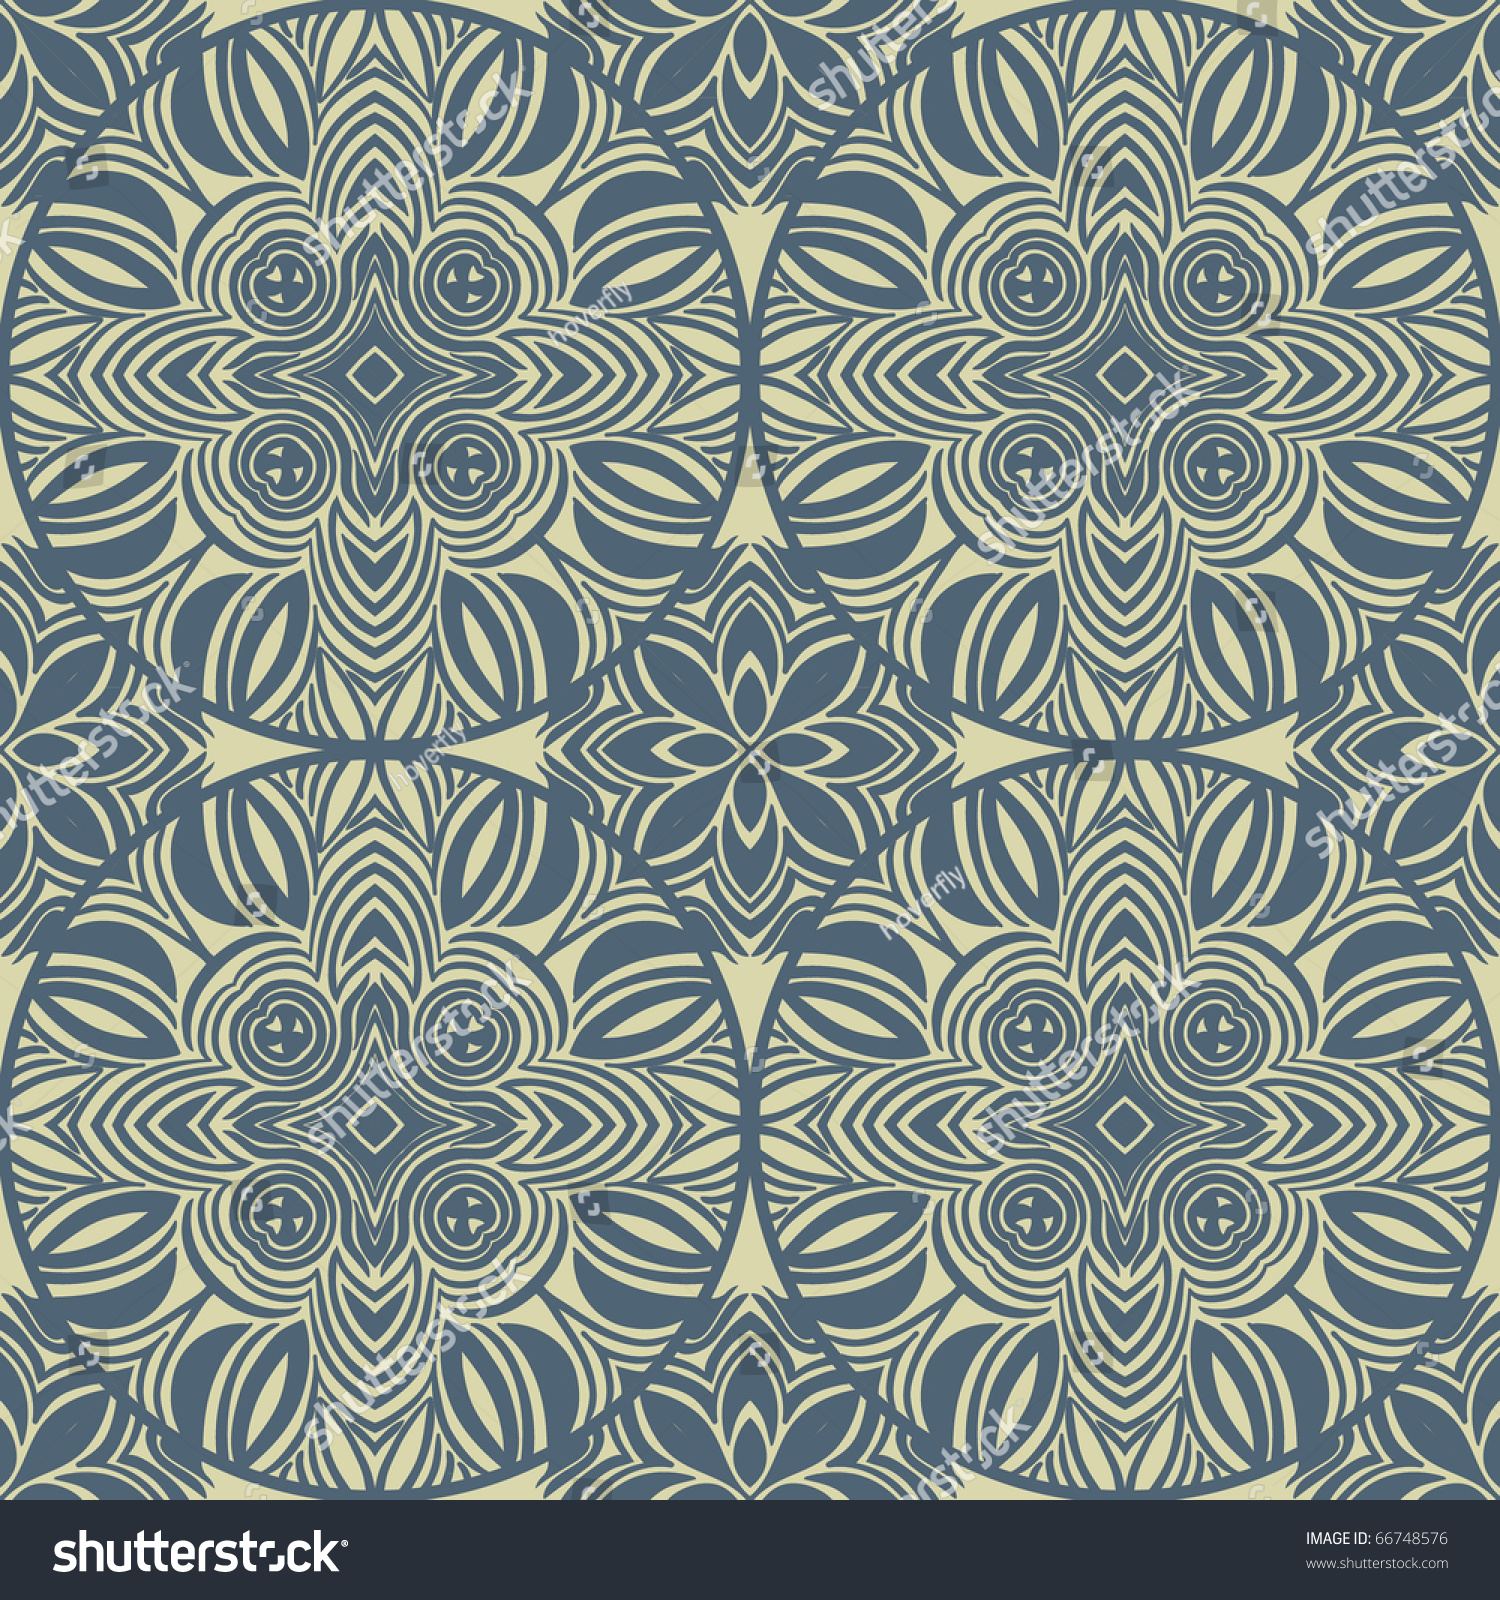 vintage repeating wallpaper - photo #30